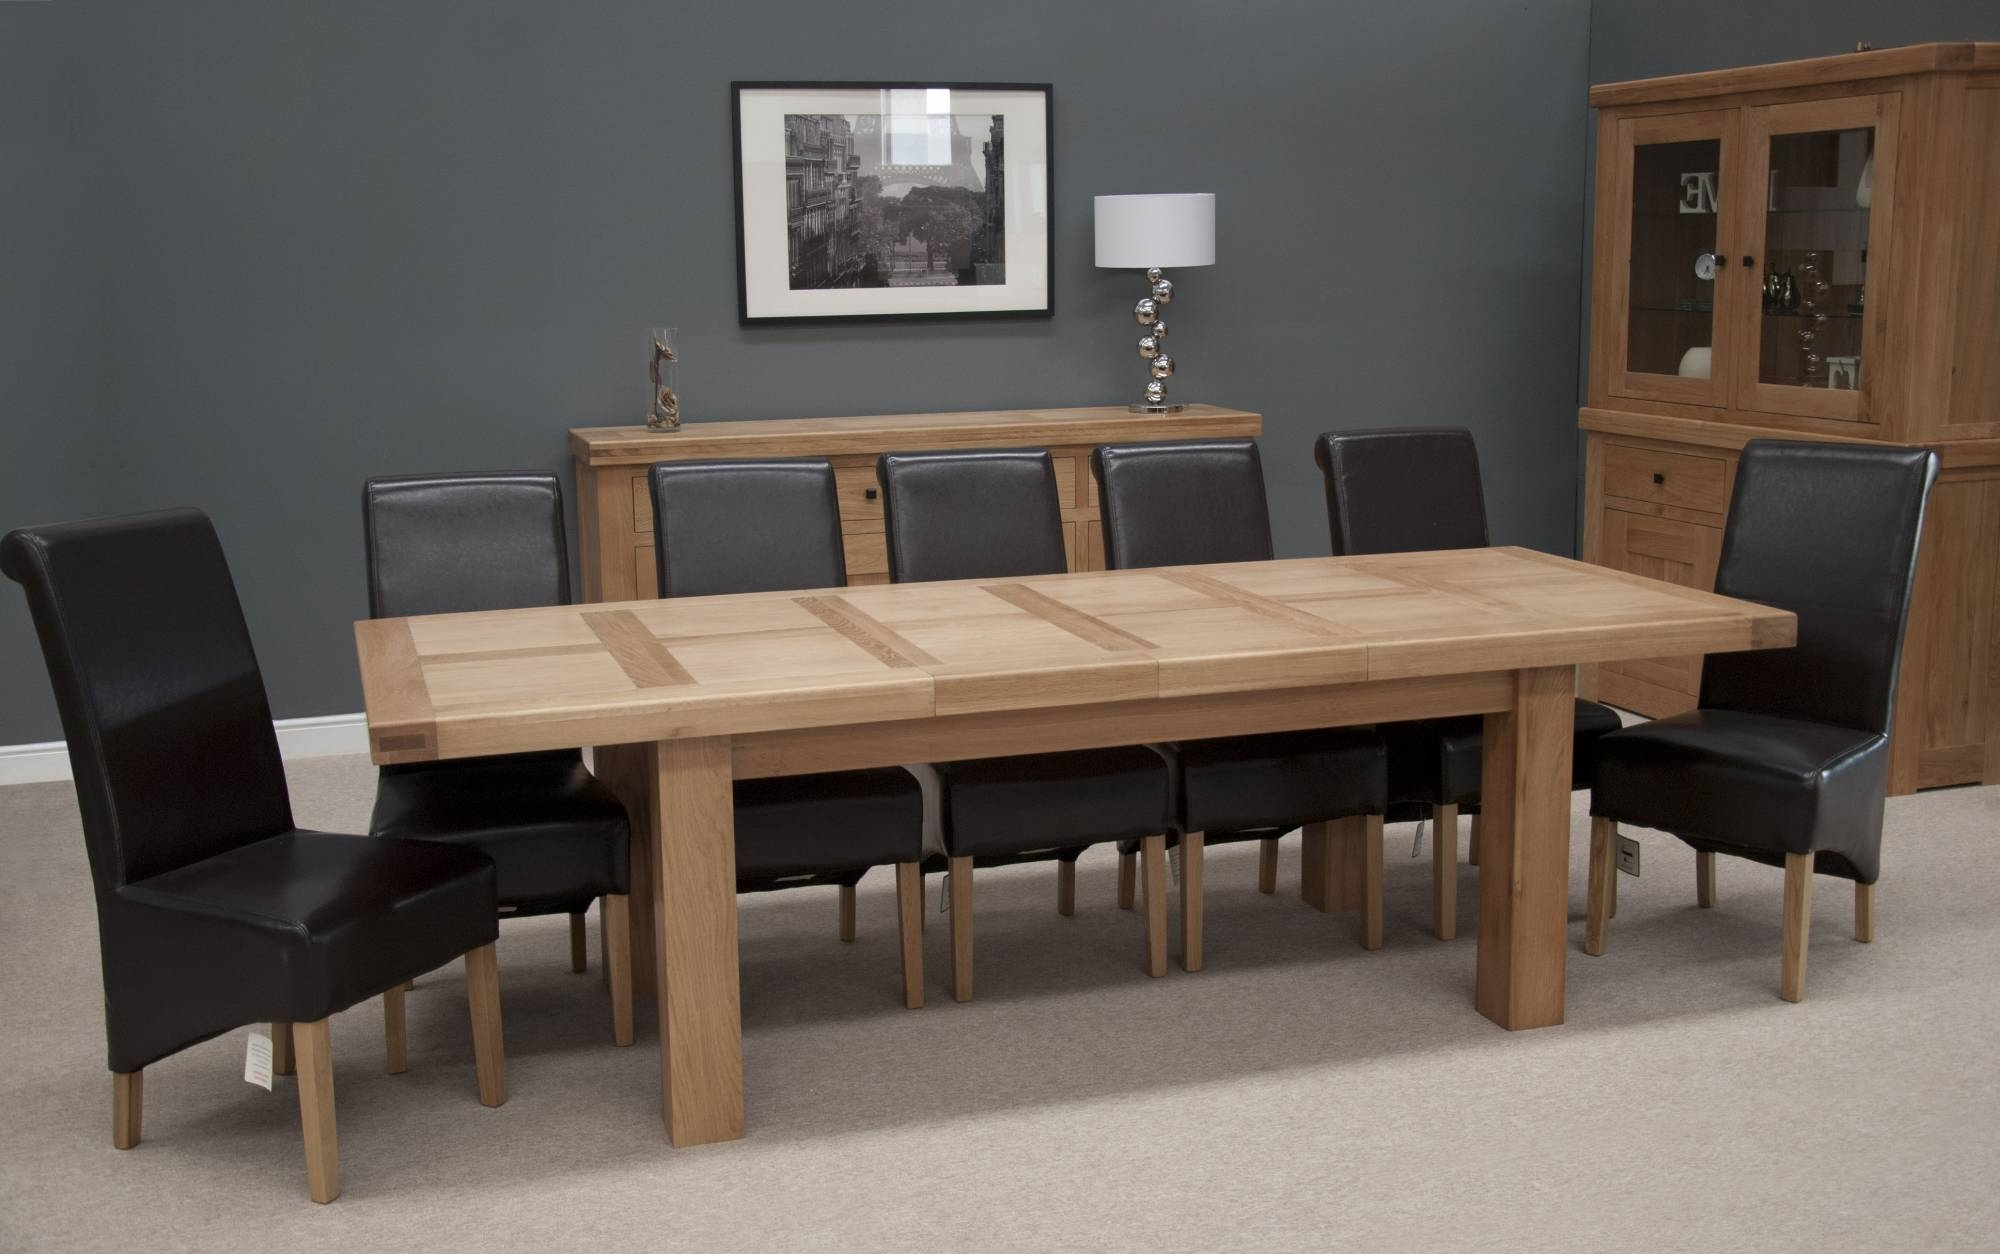 10 Seater Dining Tables And Chairs Intended For Famous Homestyle Bordeaux Thick Top Solid Oak Grand Extending Dining Table (View 18 of 25)